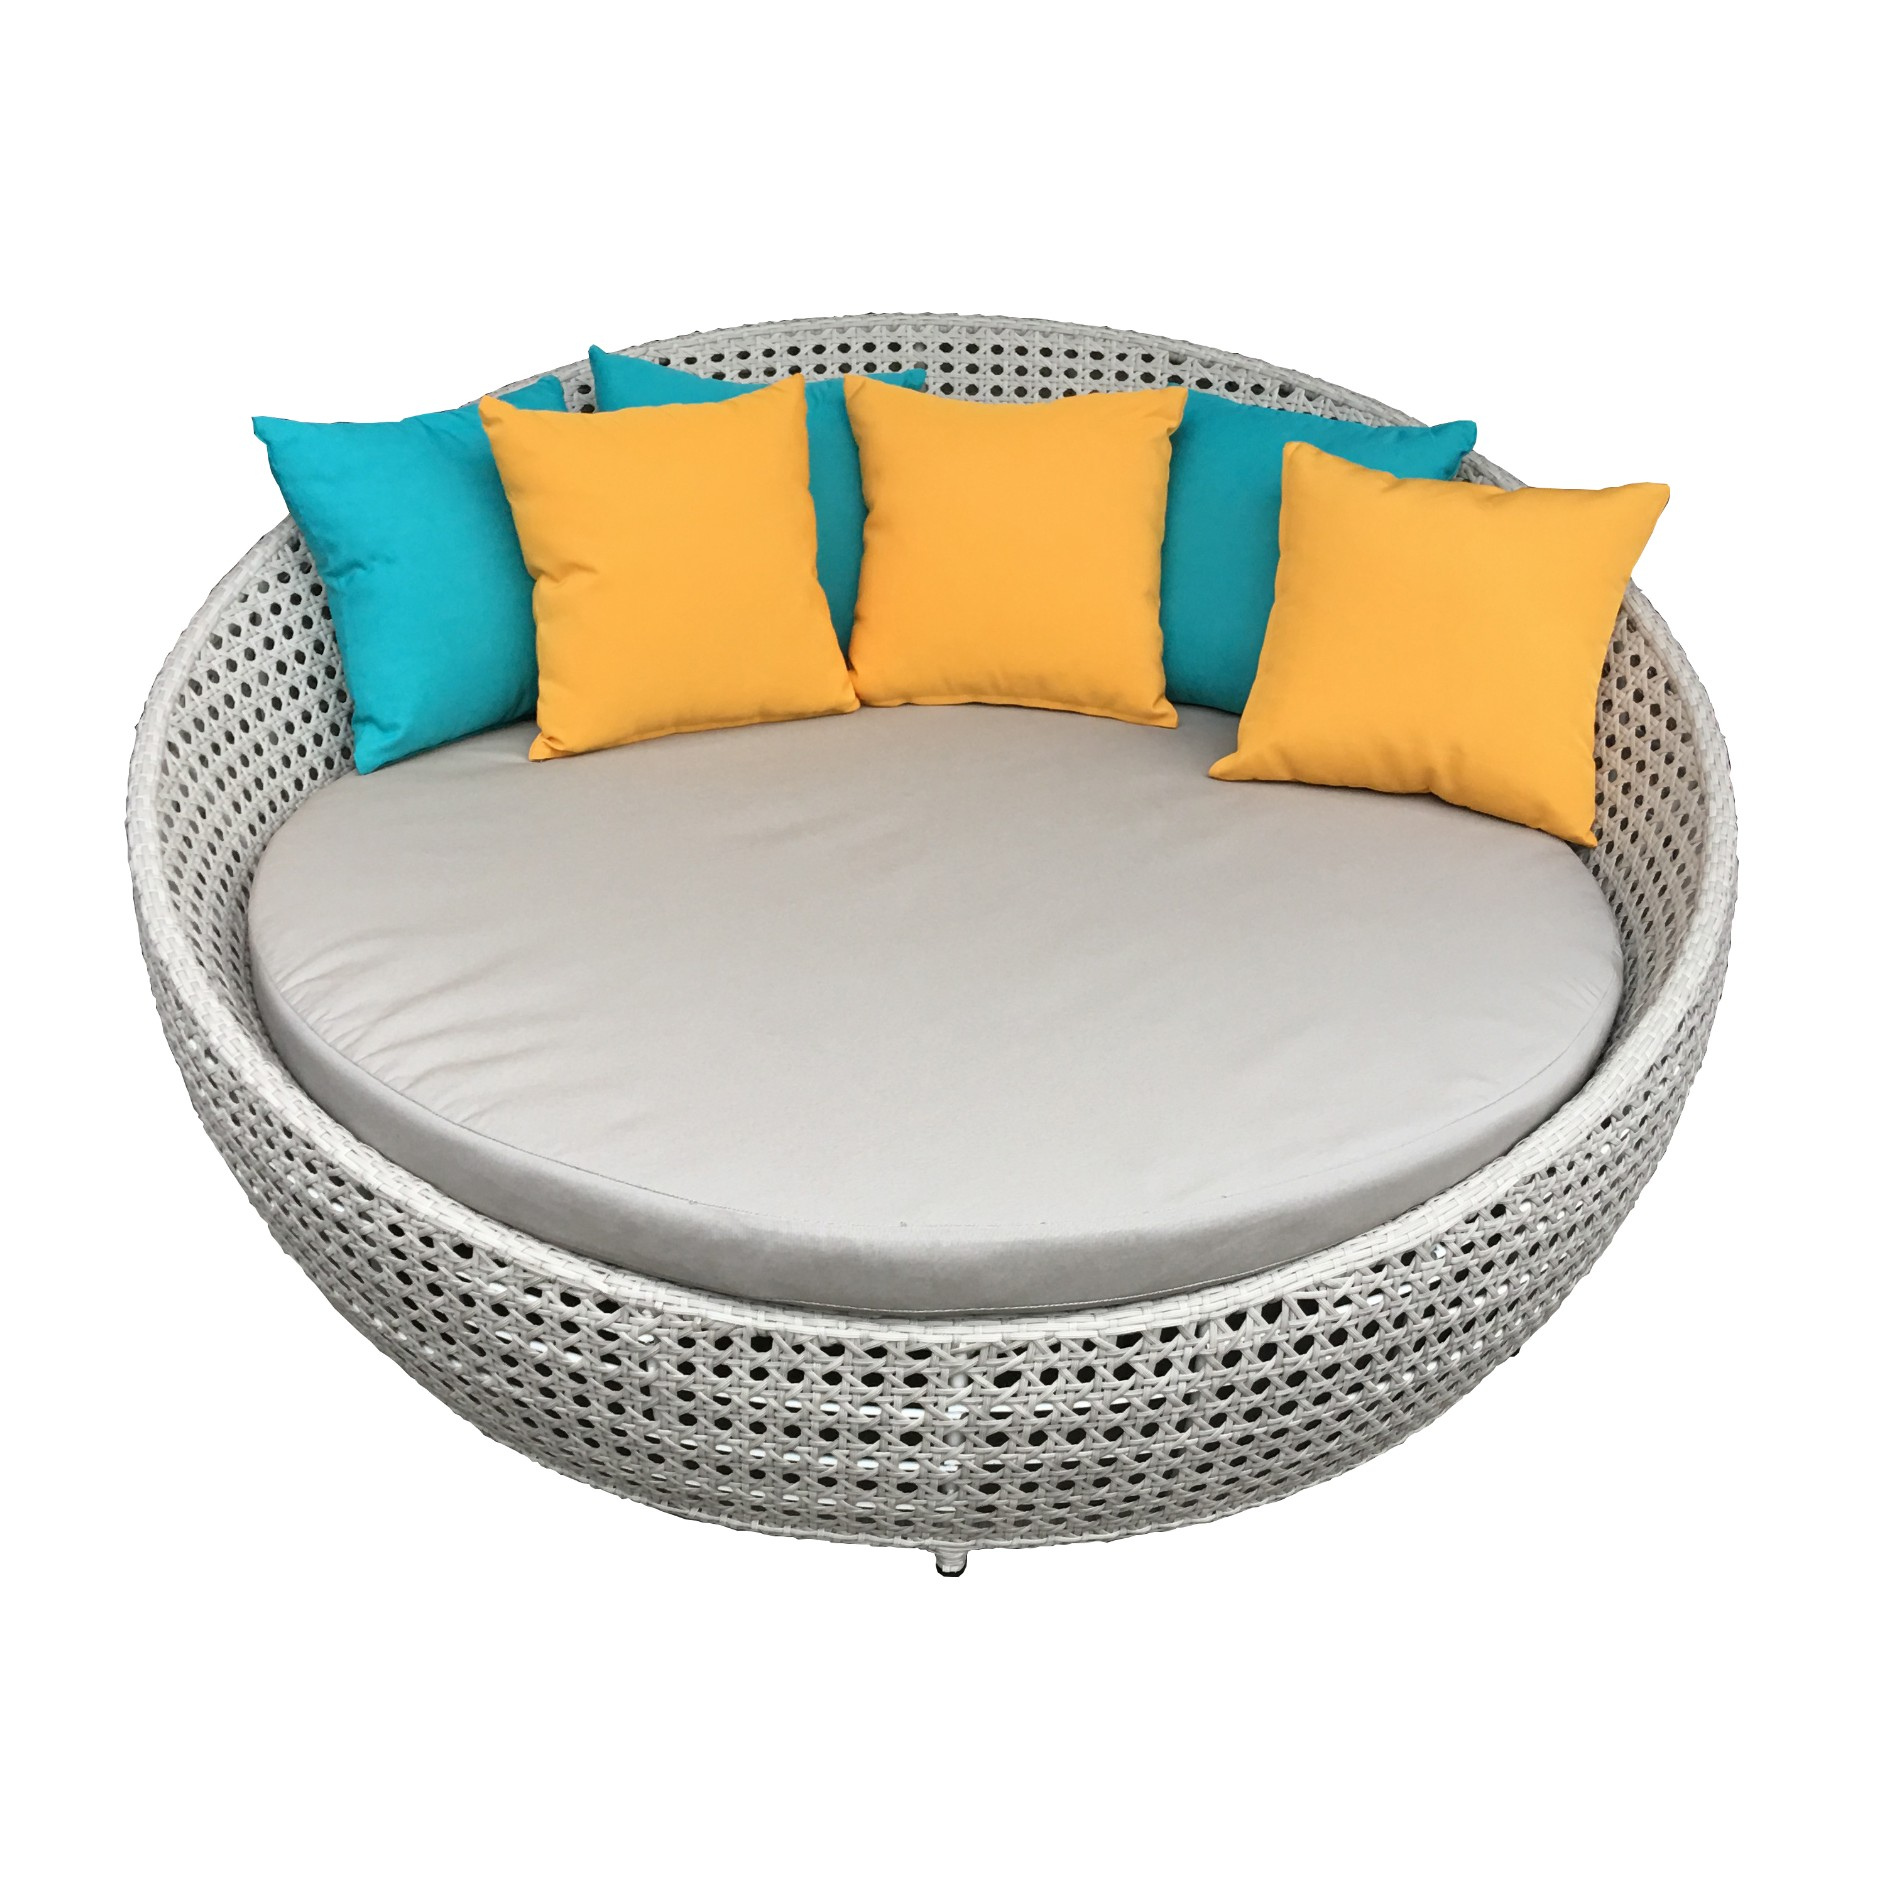 Wicker Outdoor Day Bed